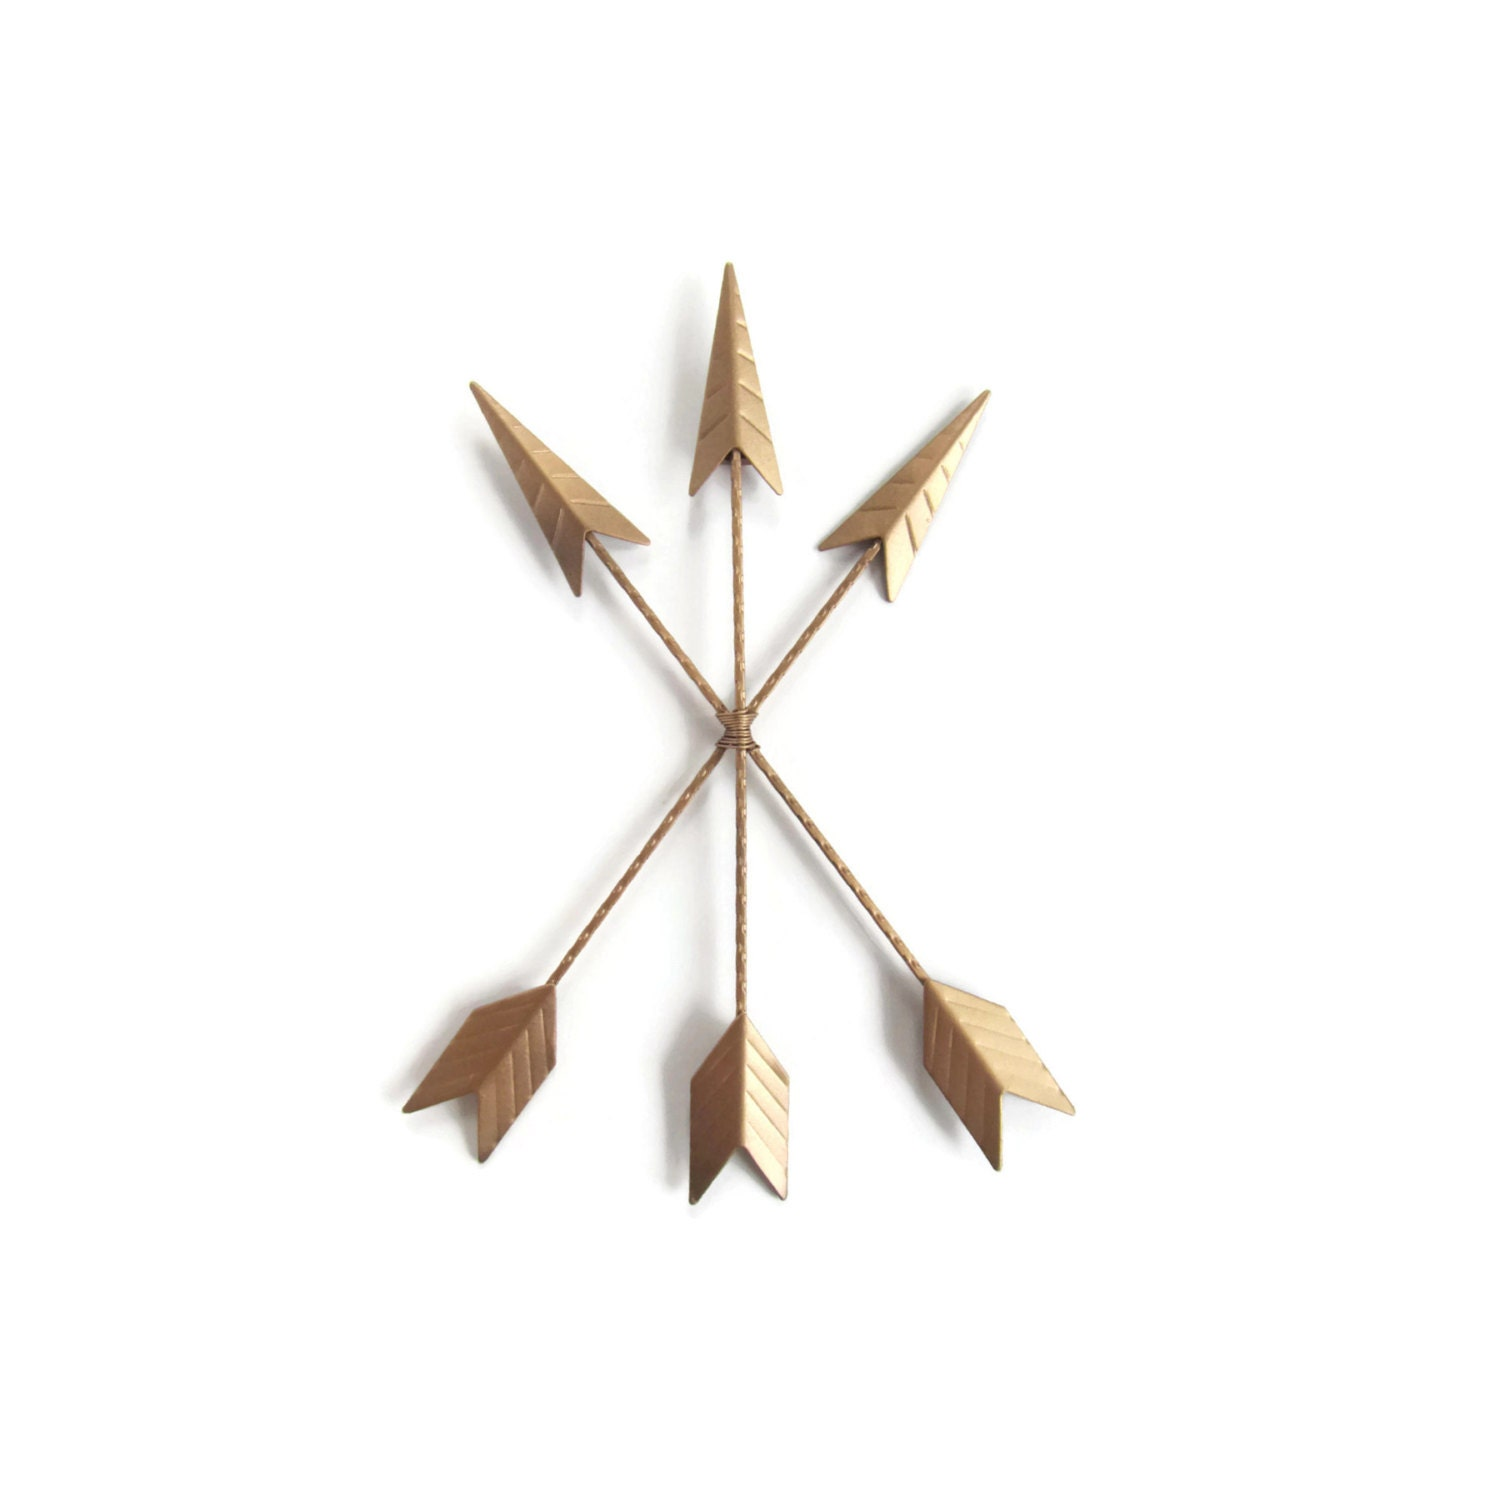 Arrows For Wall Decor : Gold arrow wall hanging art home decor